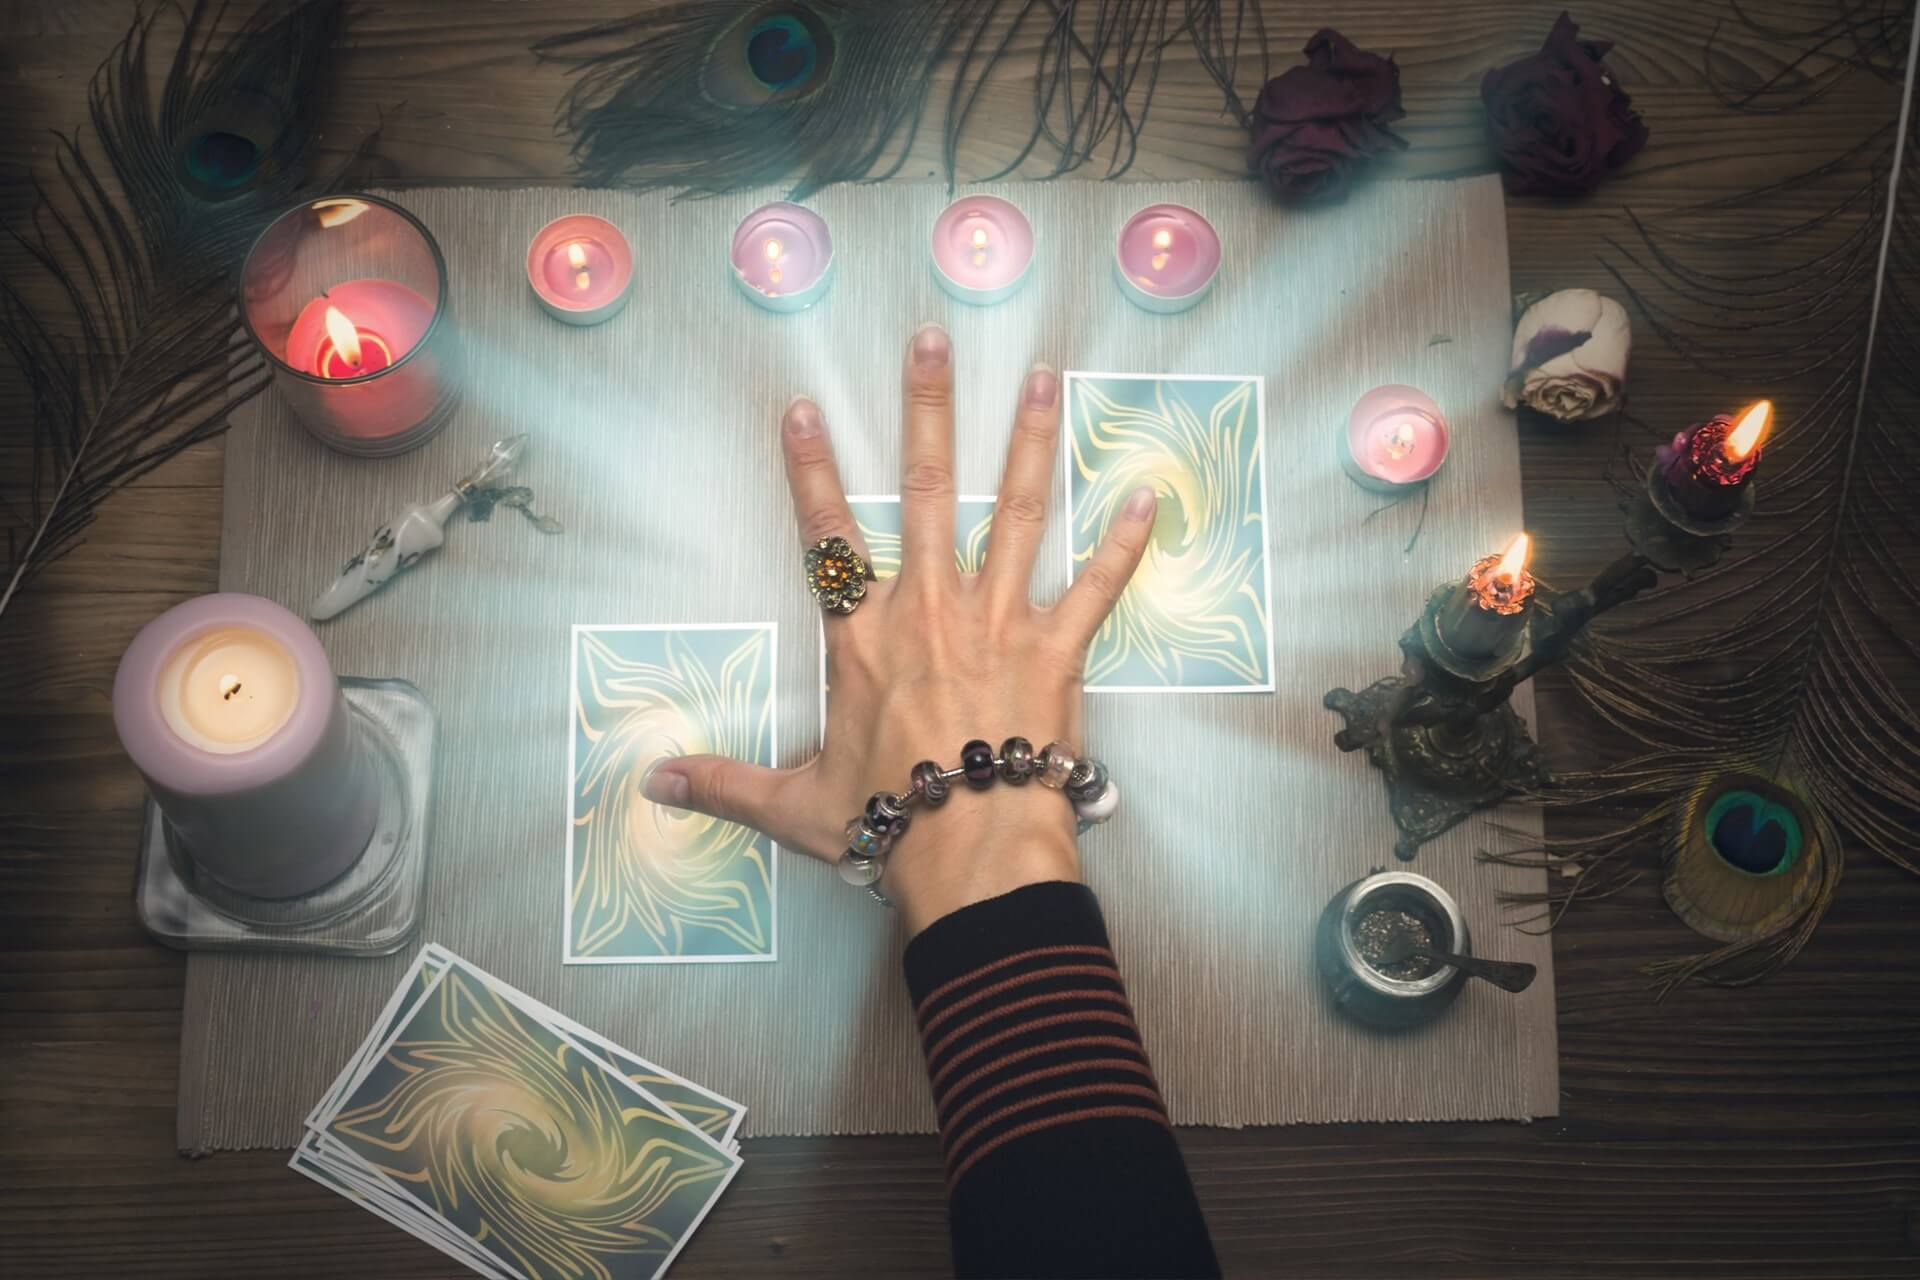 A psychic reader surrounded by tarot cards and candles